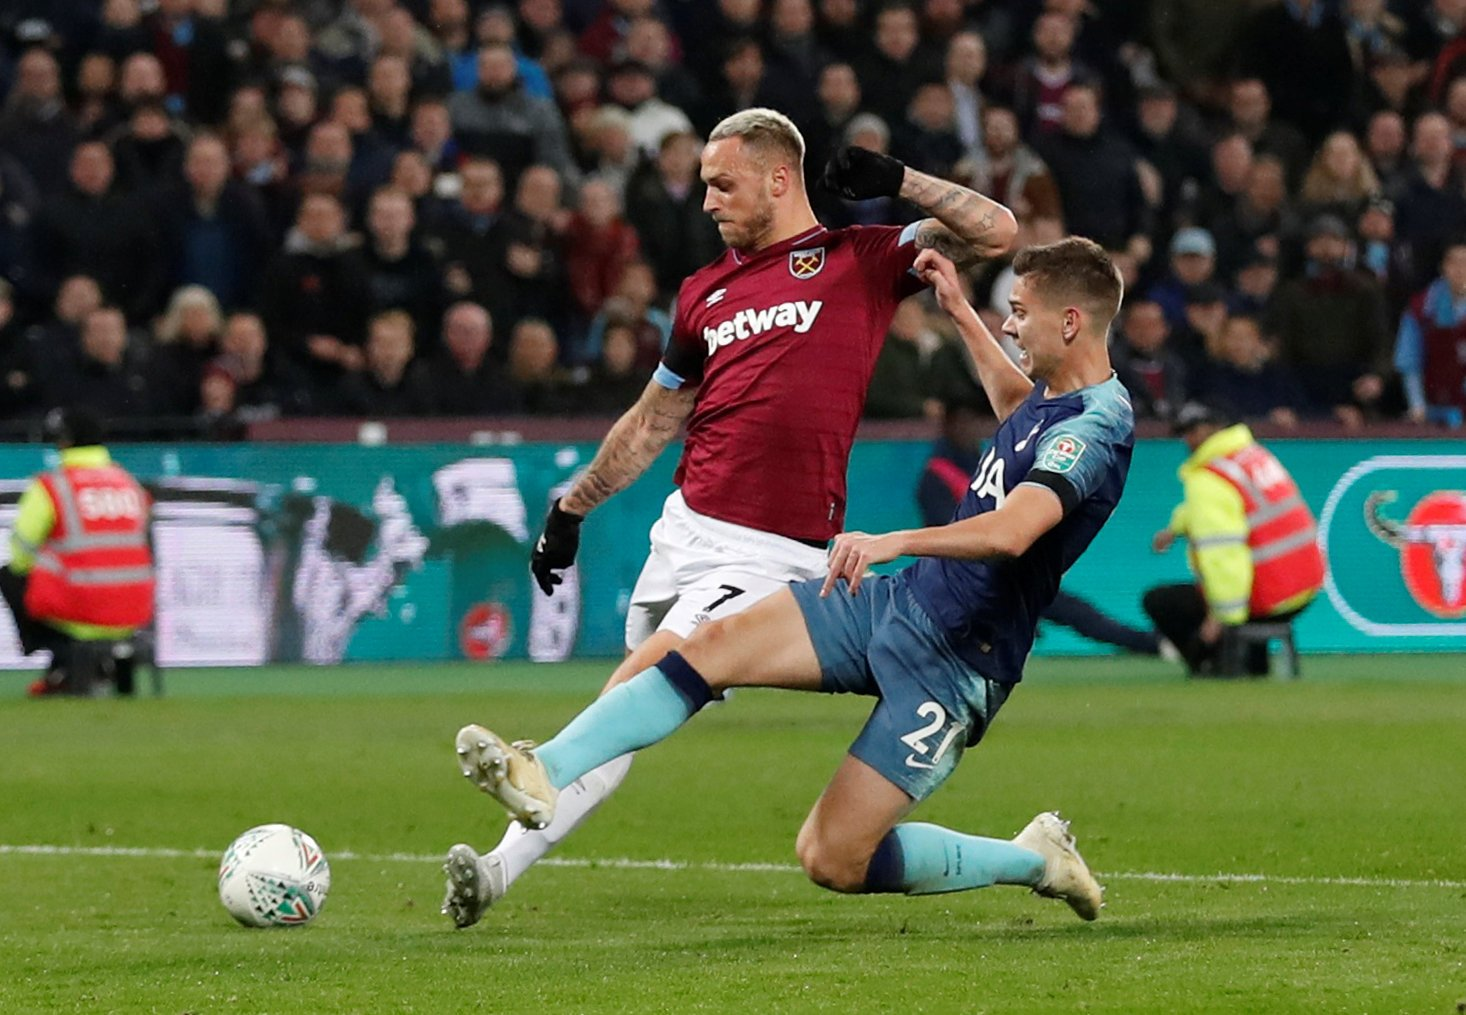 West Ham team news: Pellegrini confirms Arnautovic expected to miss a month of action